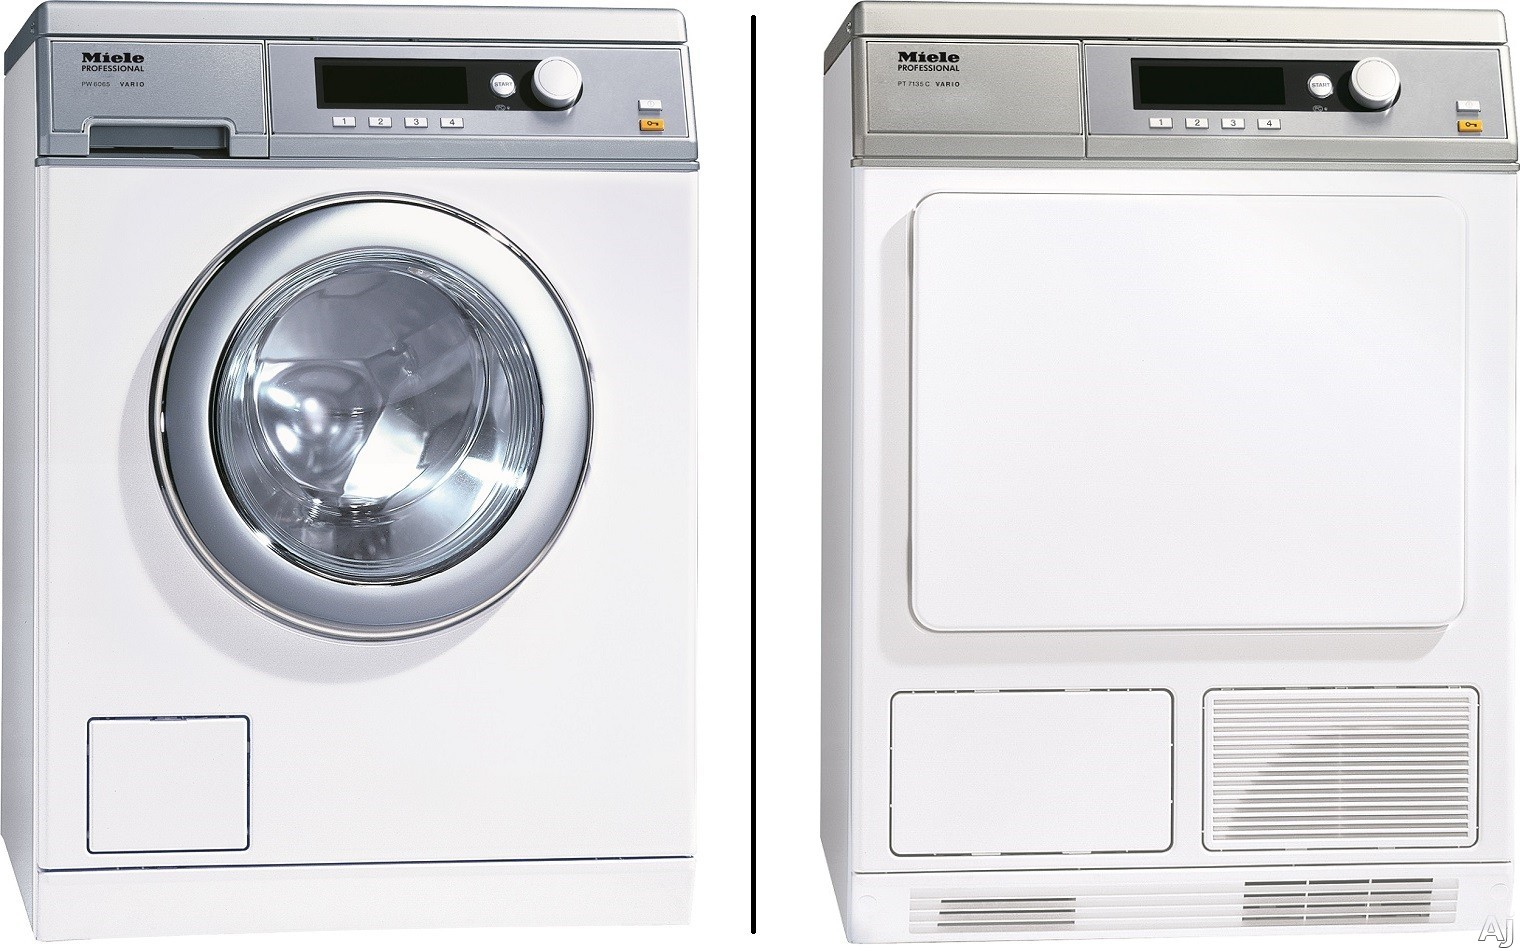 Miele stackable washer dryer ventless - Image Disclaimer